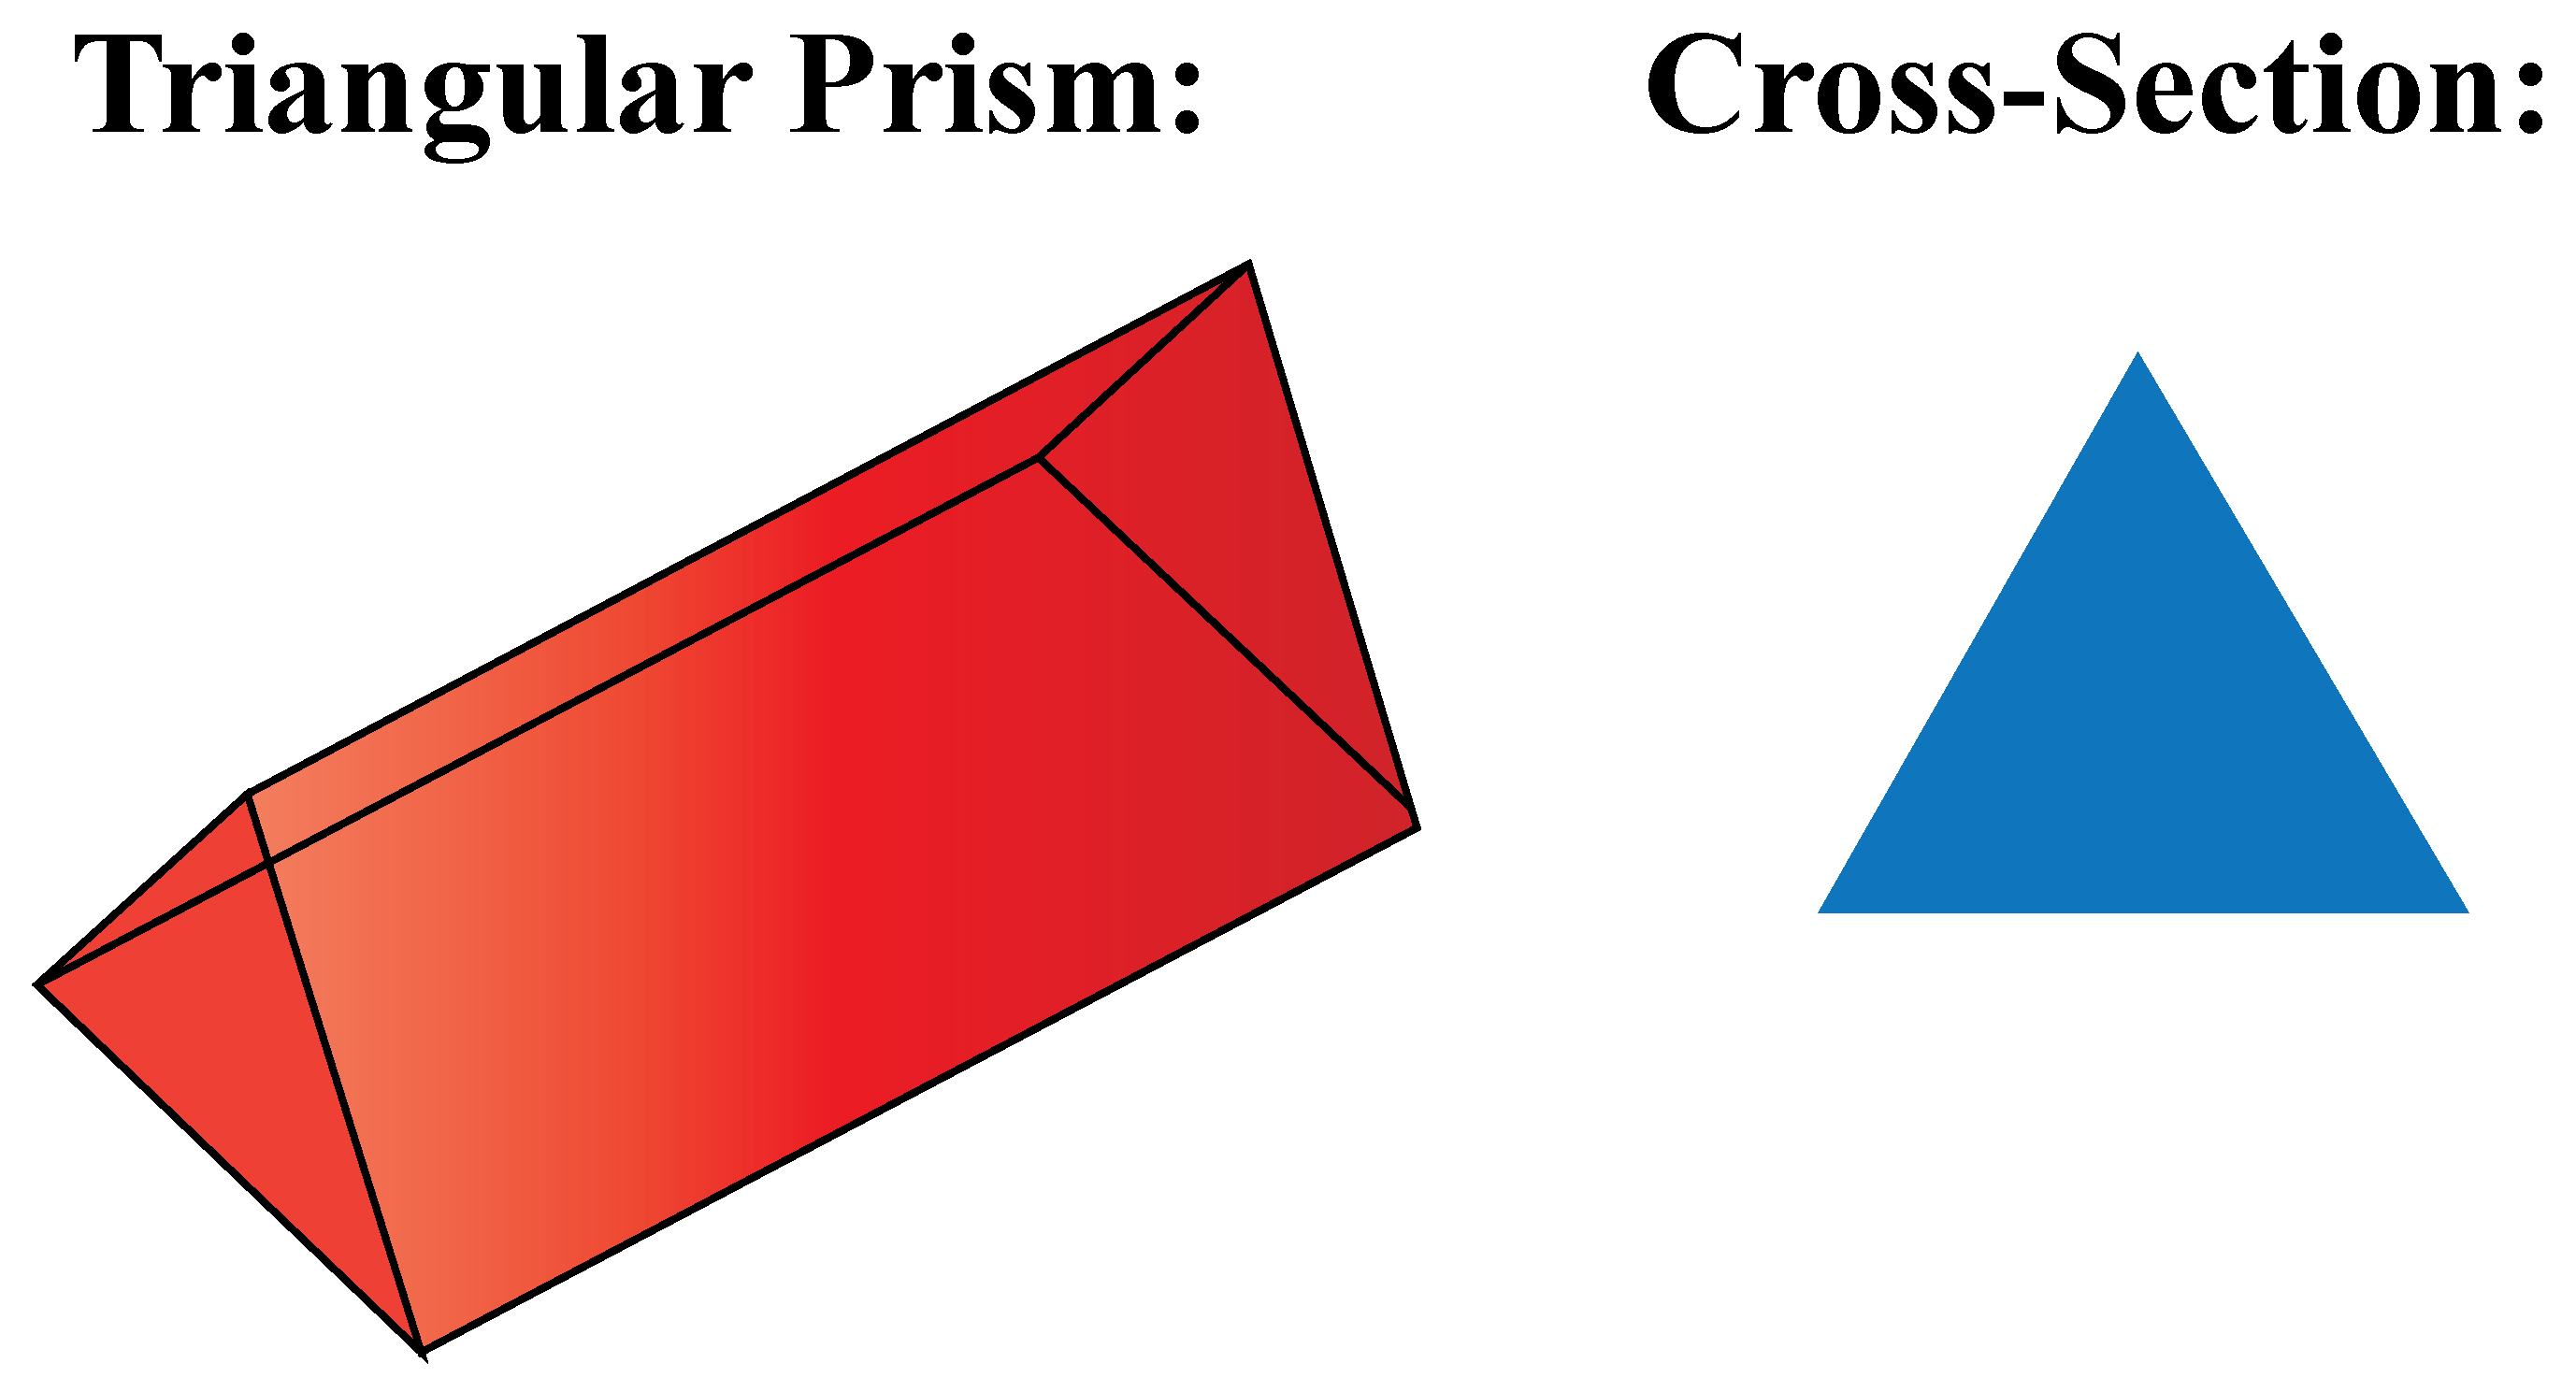 example of a prism and with cross section view